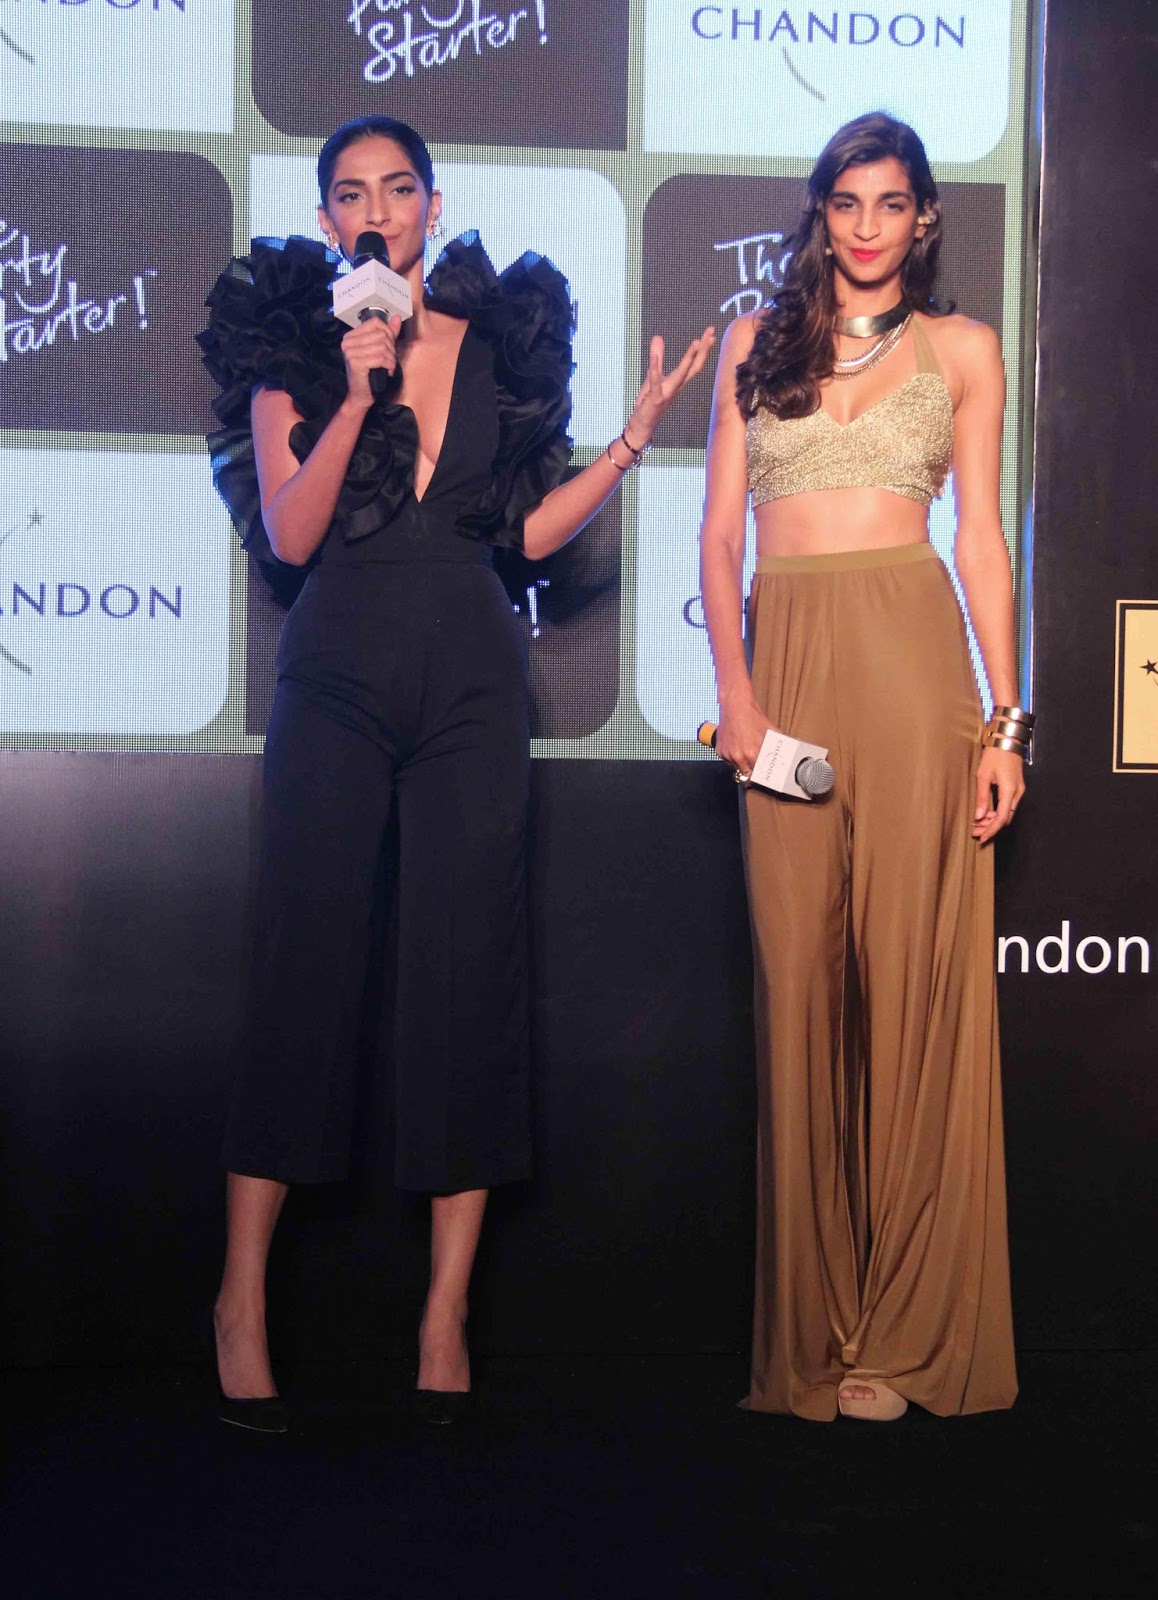 Sonam Kapoor Sexiest Boobs Show At Chandons The Party -2050